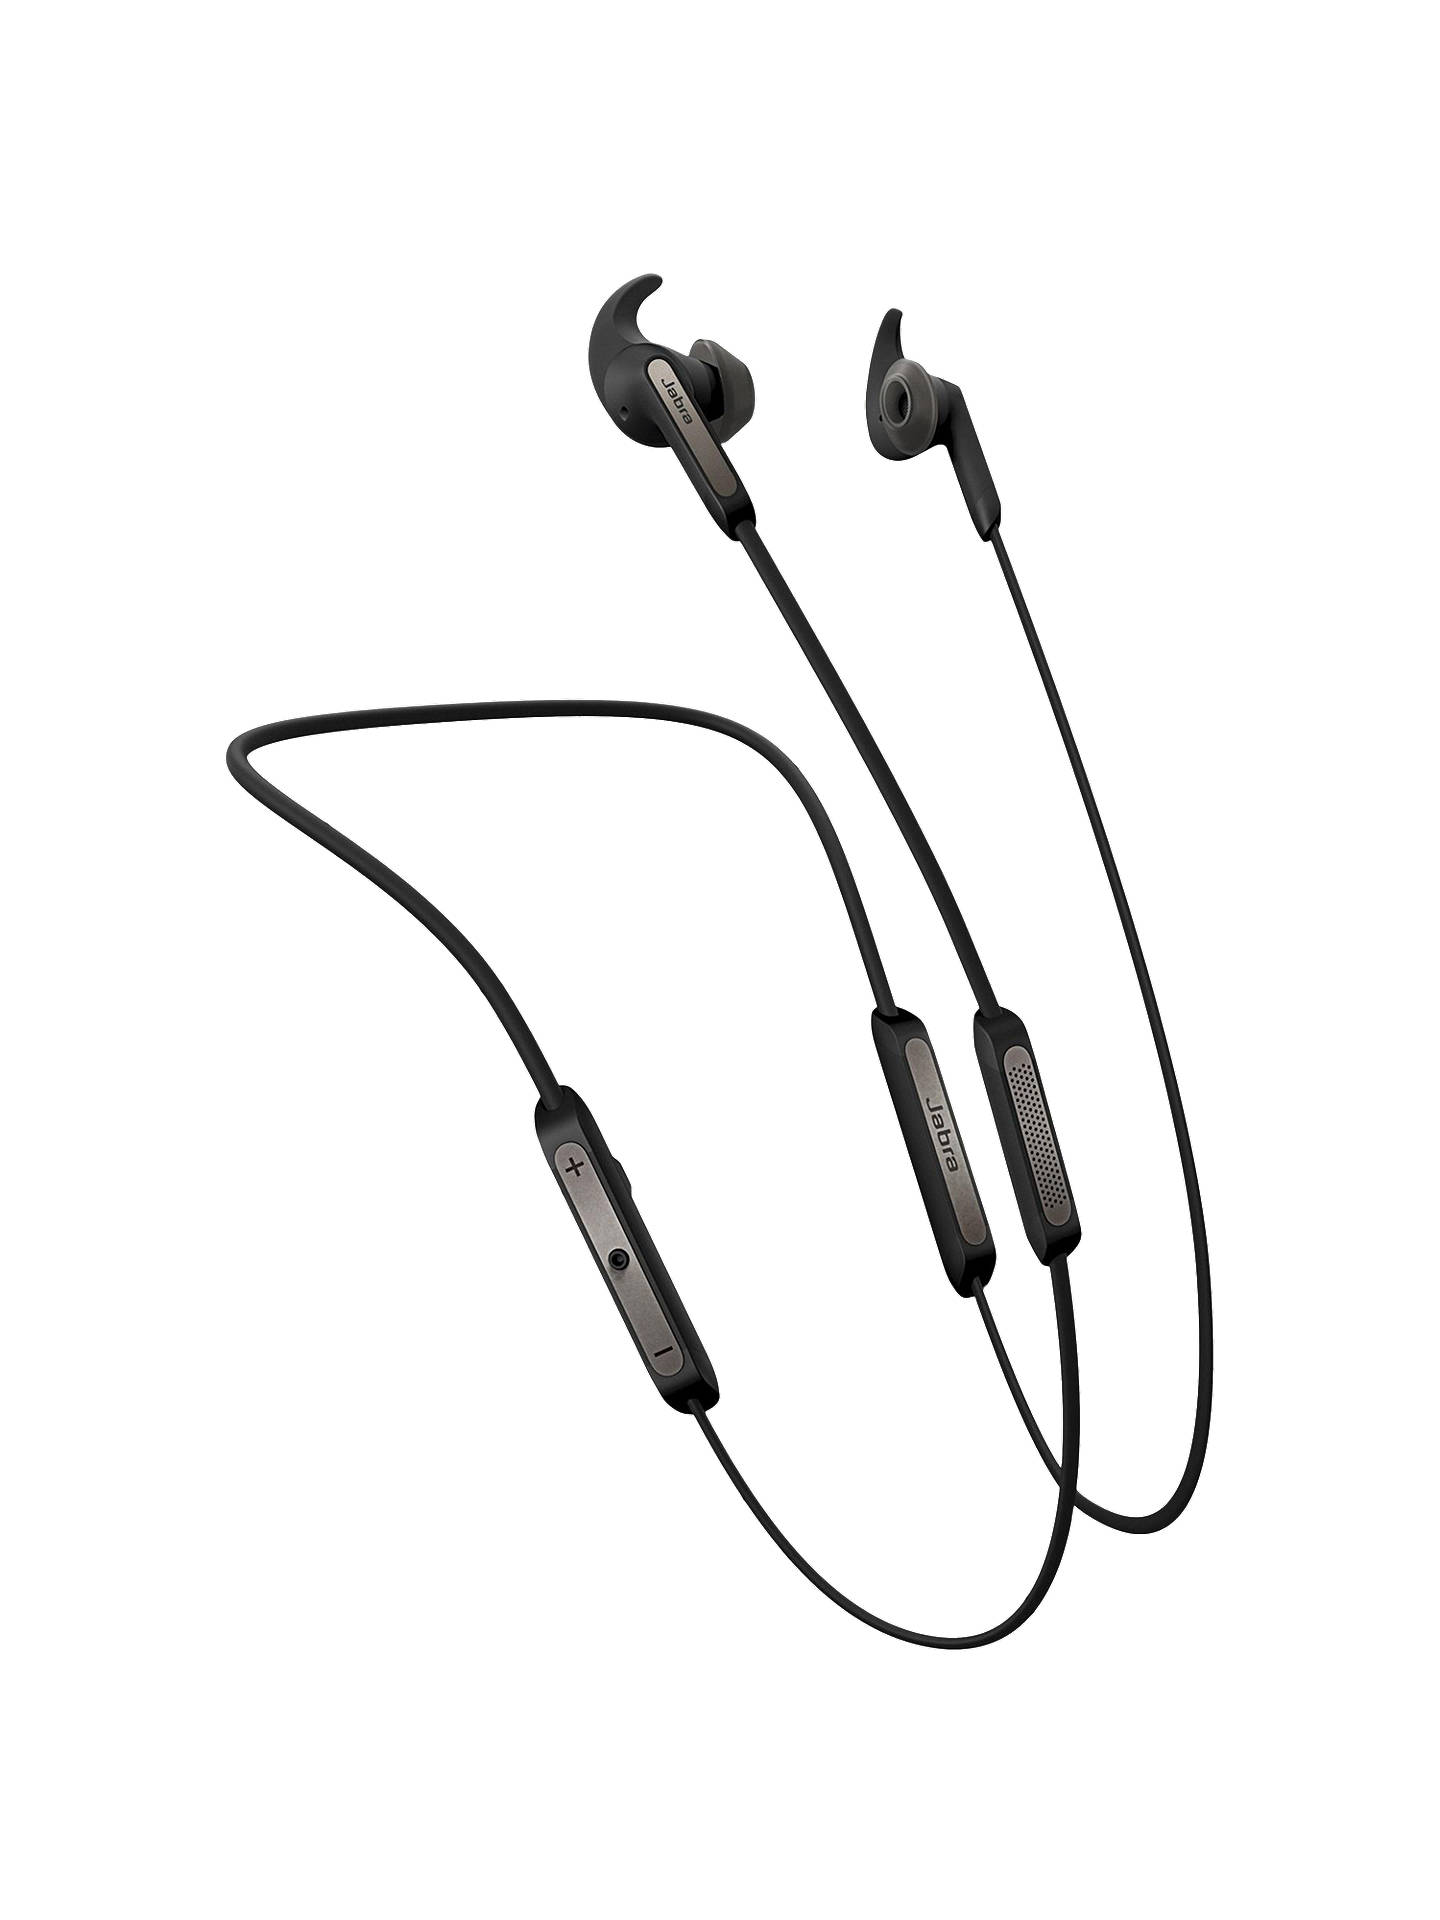 Jabra Elite 45e Wireless Bluetooth In-Ear Headphones with